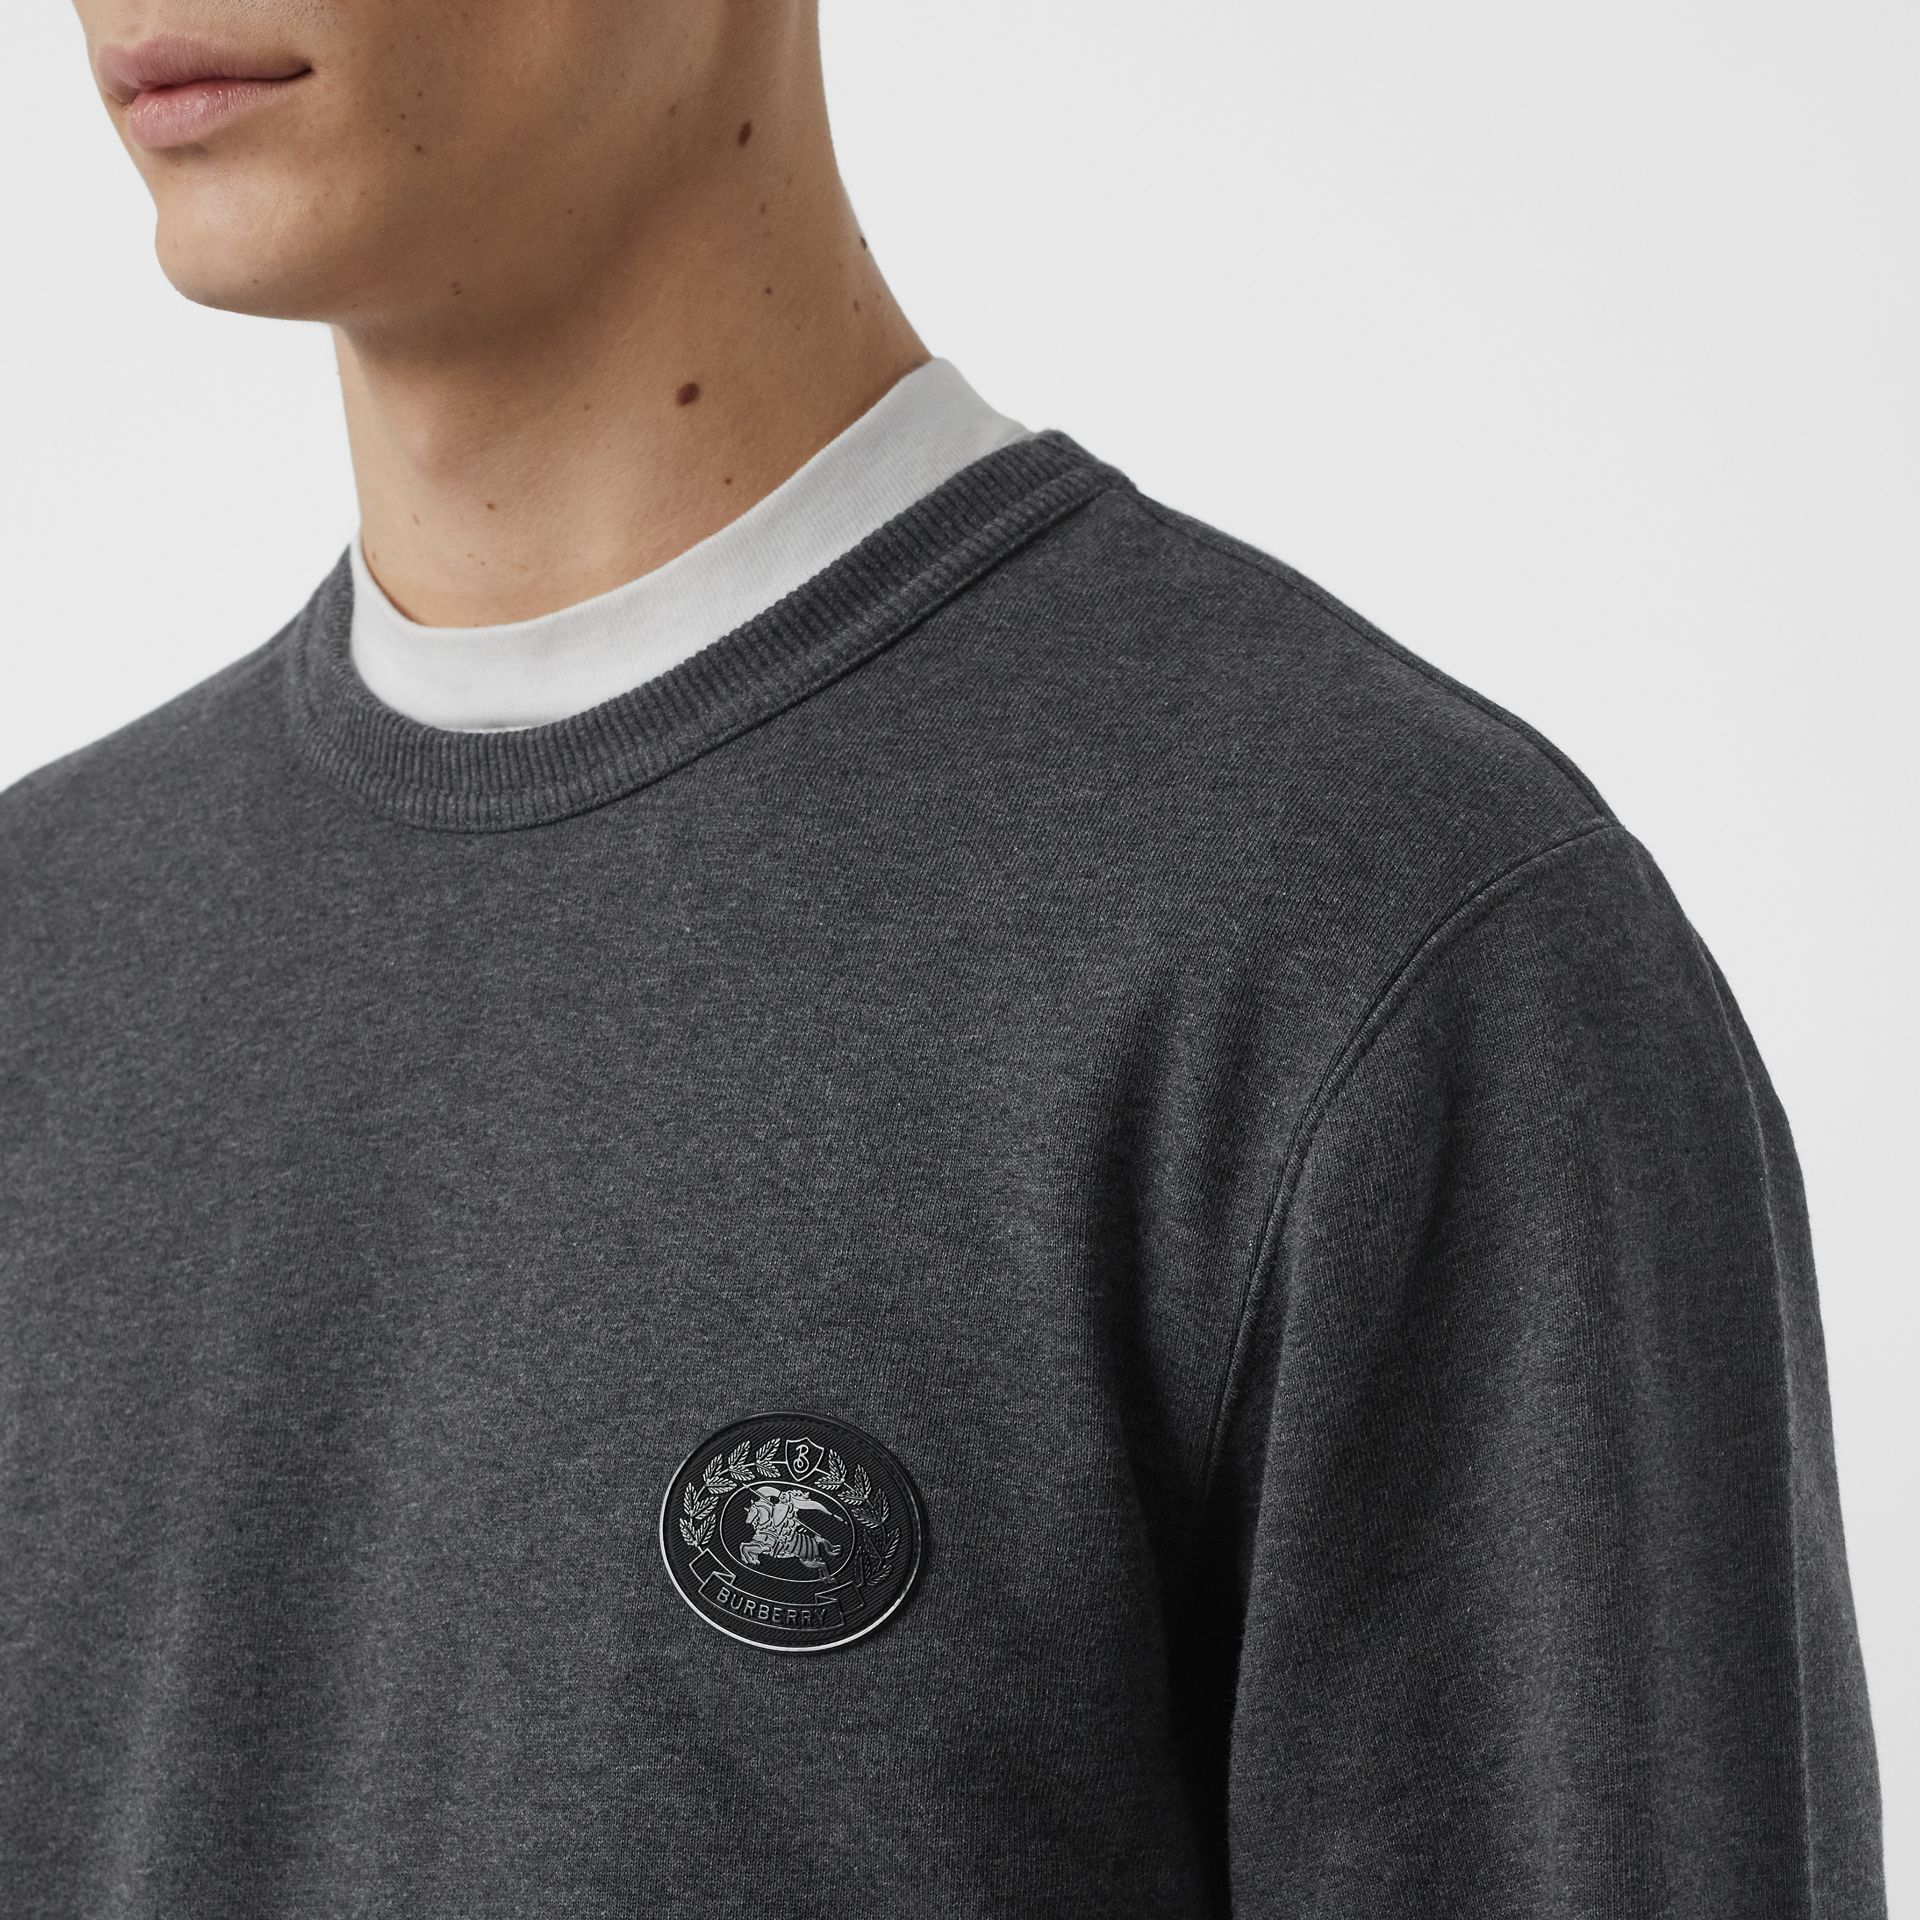 Embroidered Crest Cotton Sweatshirt in Mid Grey Melange - Men | Burberry Canada - gallery image 1